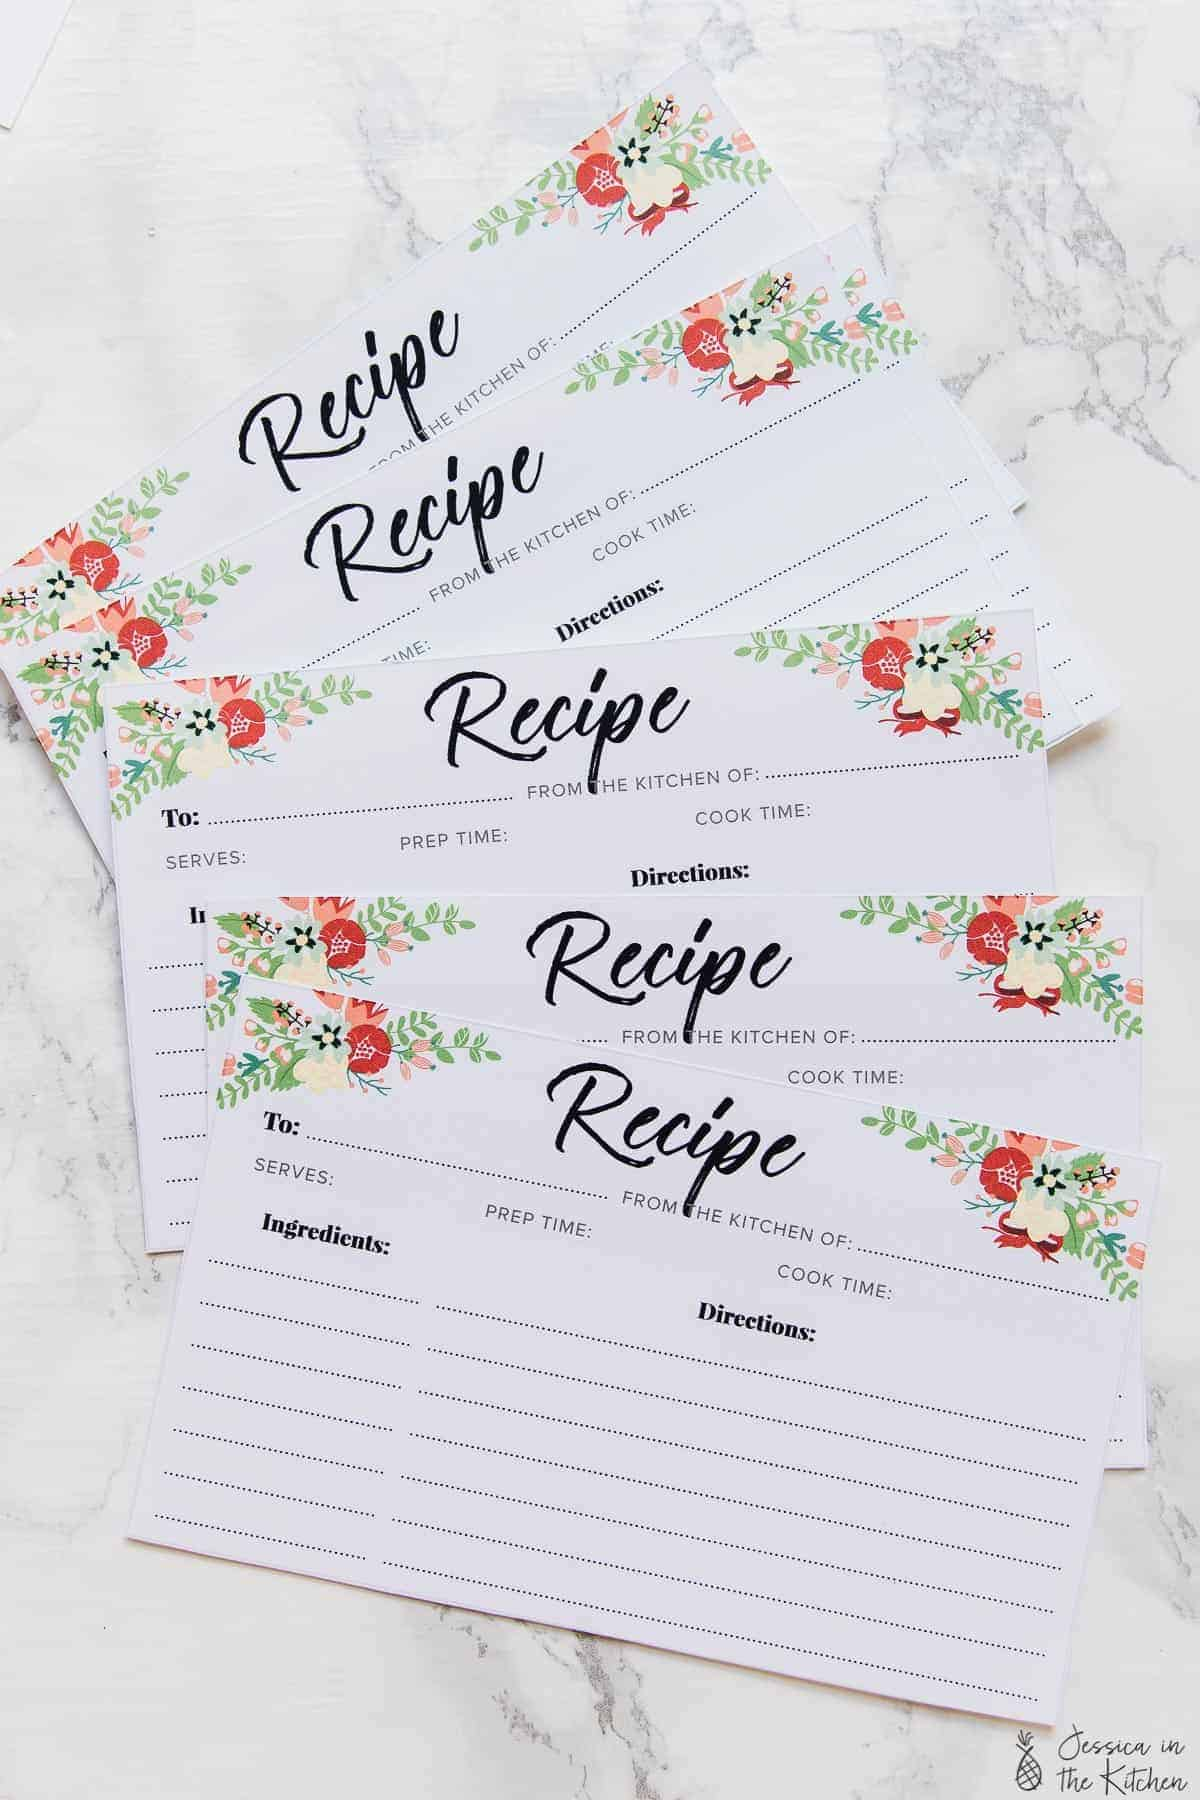 A bunch of printed recipe cards fanned out on a white table.